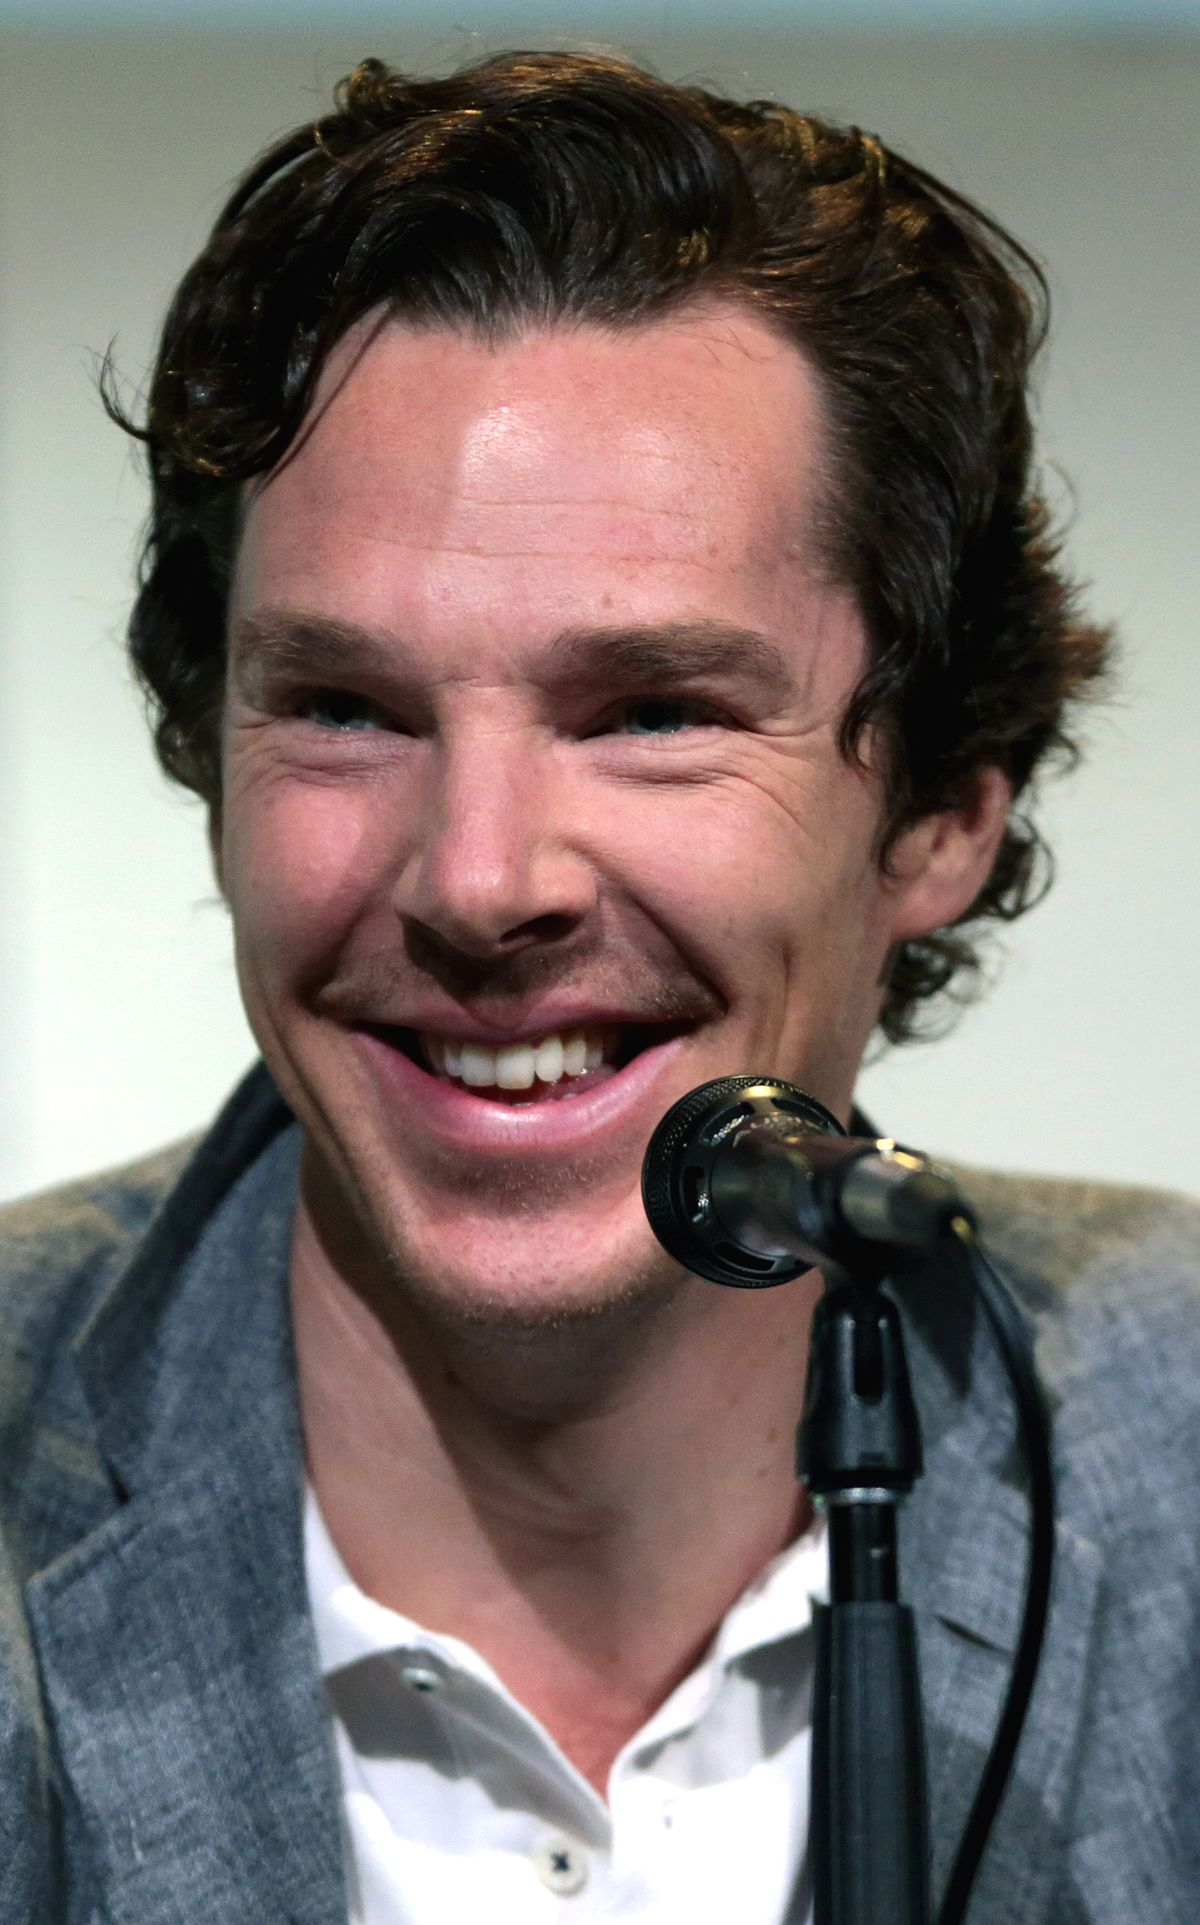 benedict cumberbatch - photo #2